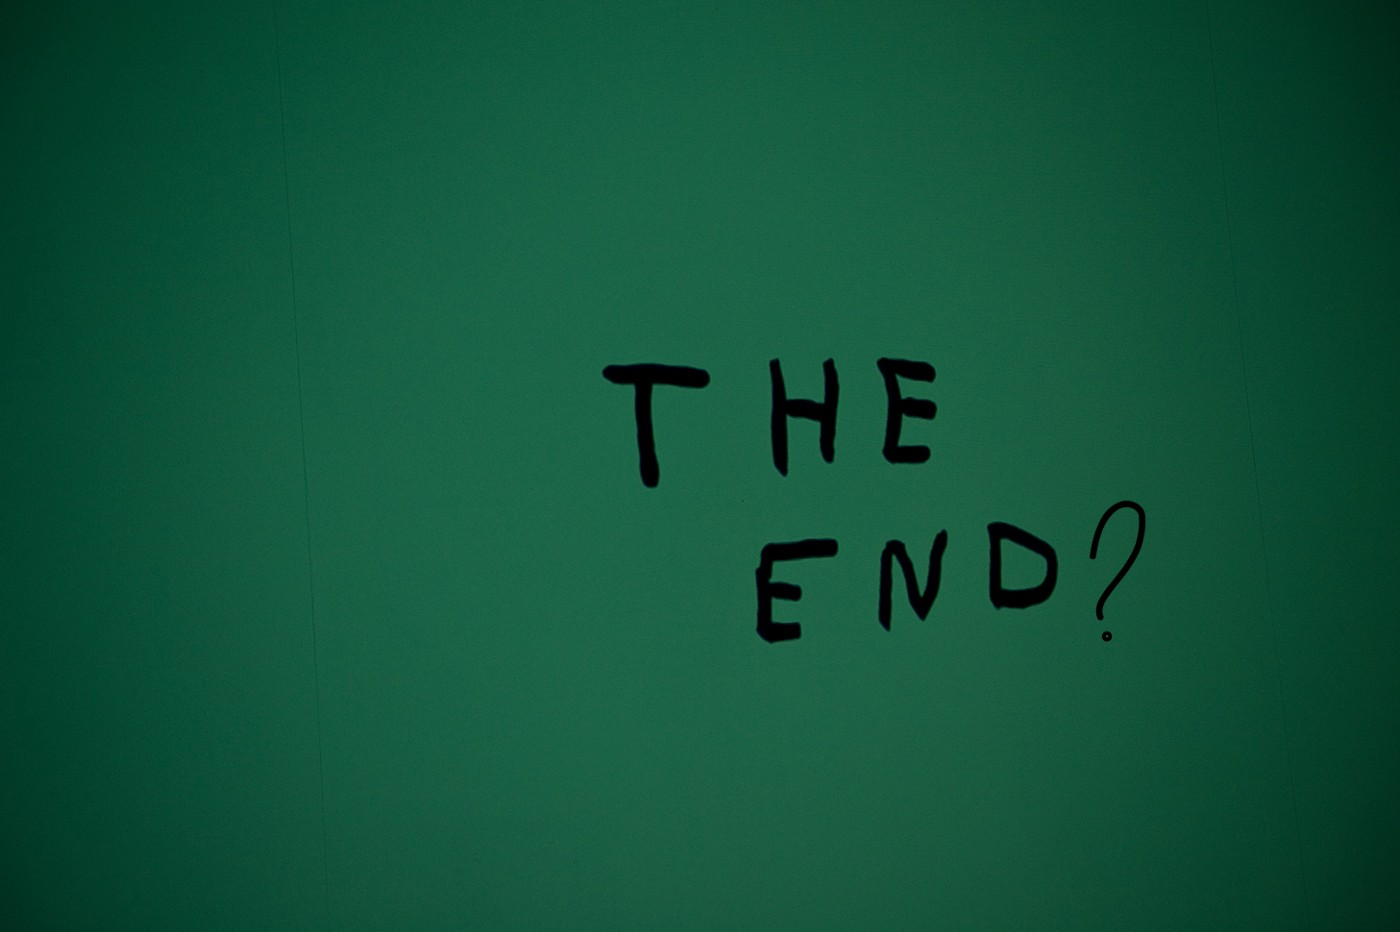 """A photograph with the text """"The End?"""" on a green background."""